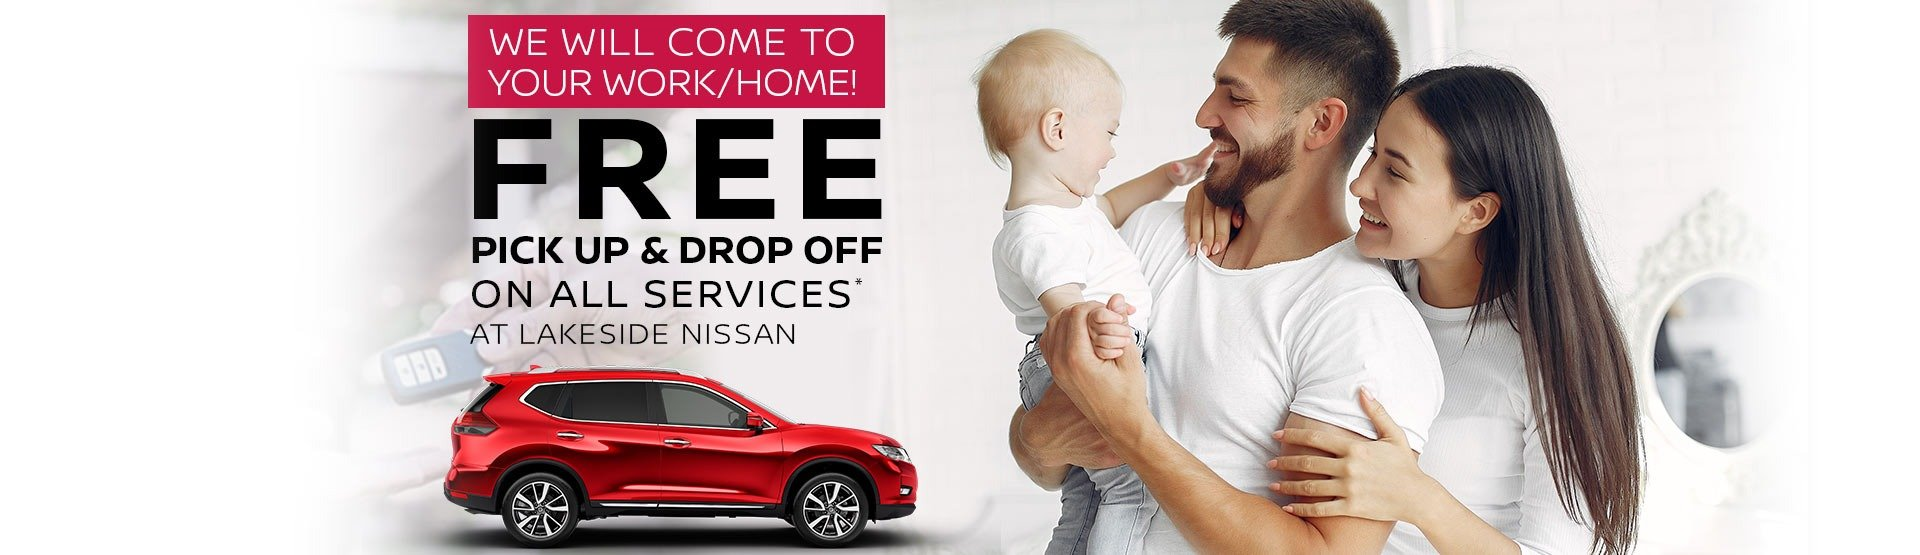 Lakeside Nissan - Free Delivery & Pickup Service